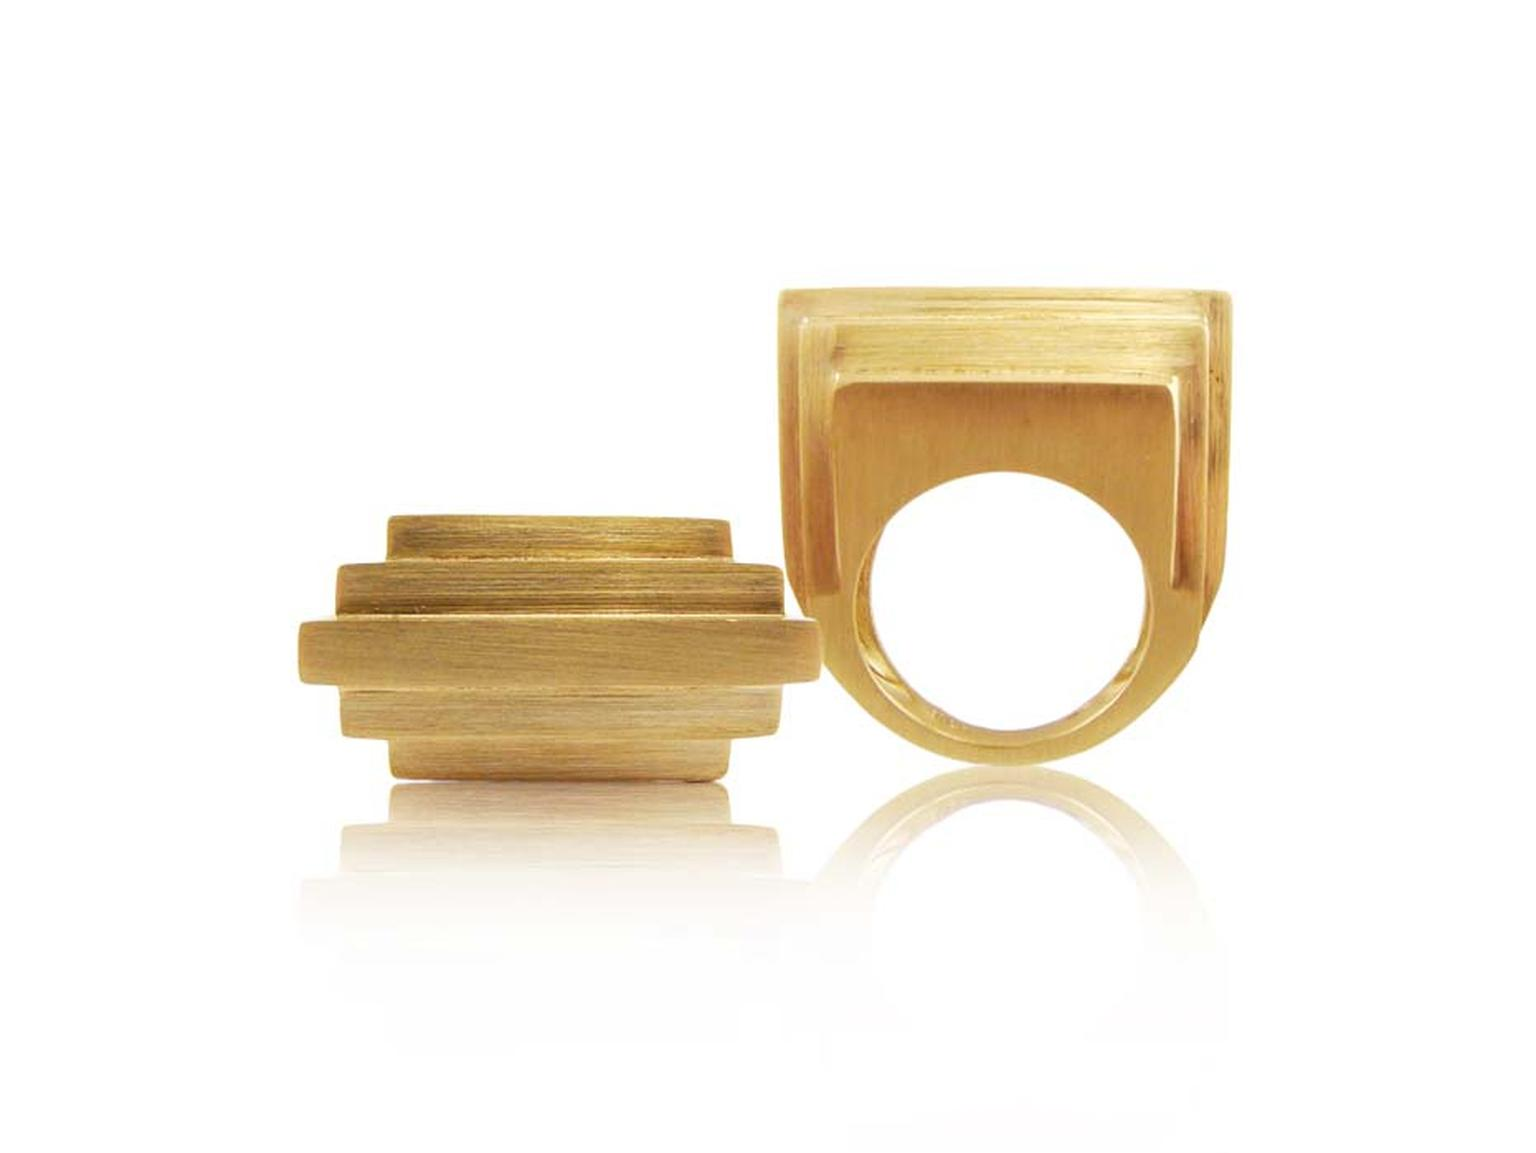 Corrado Giuspino gold sculpture ring.